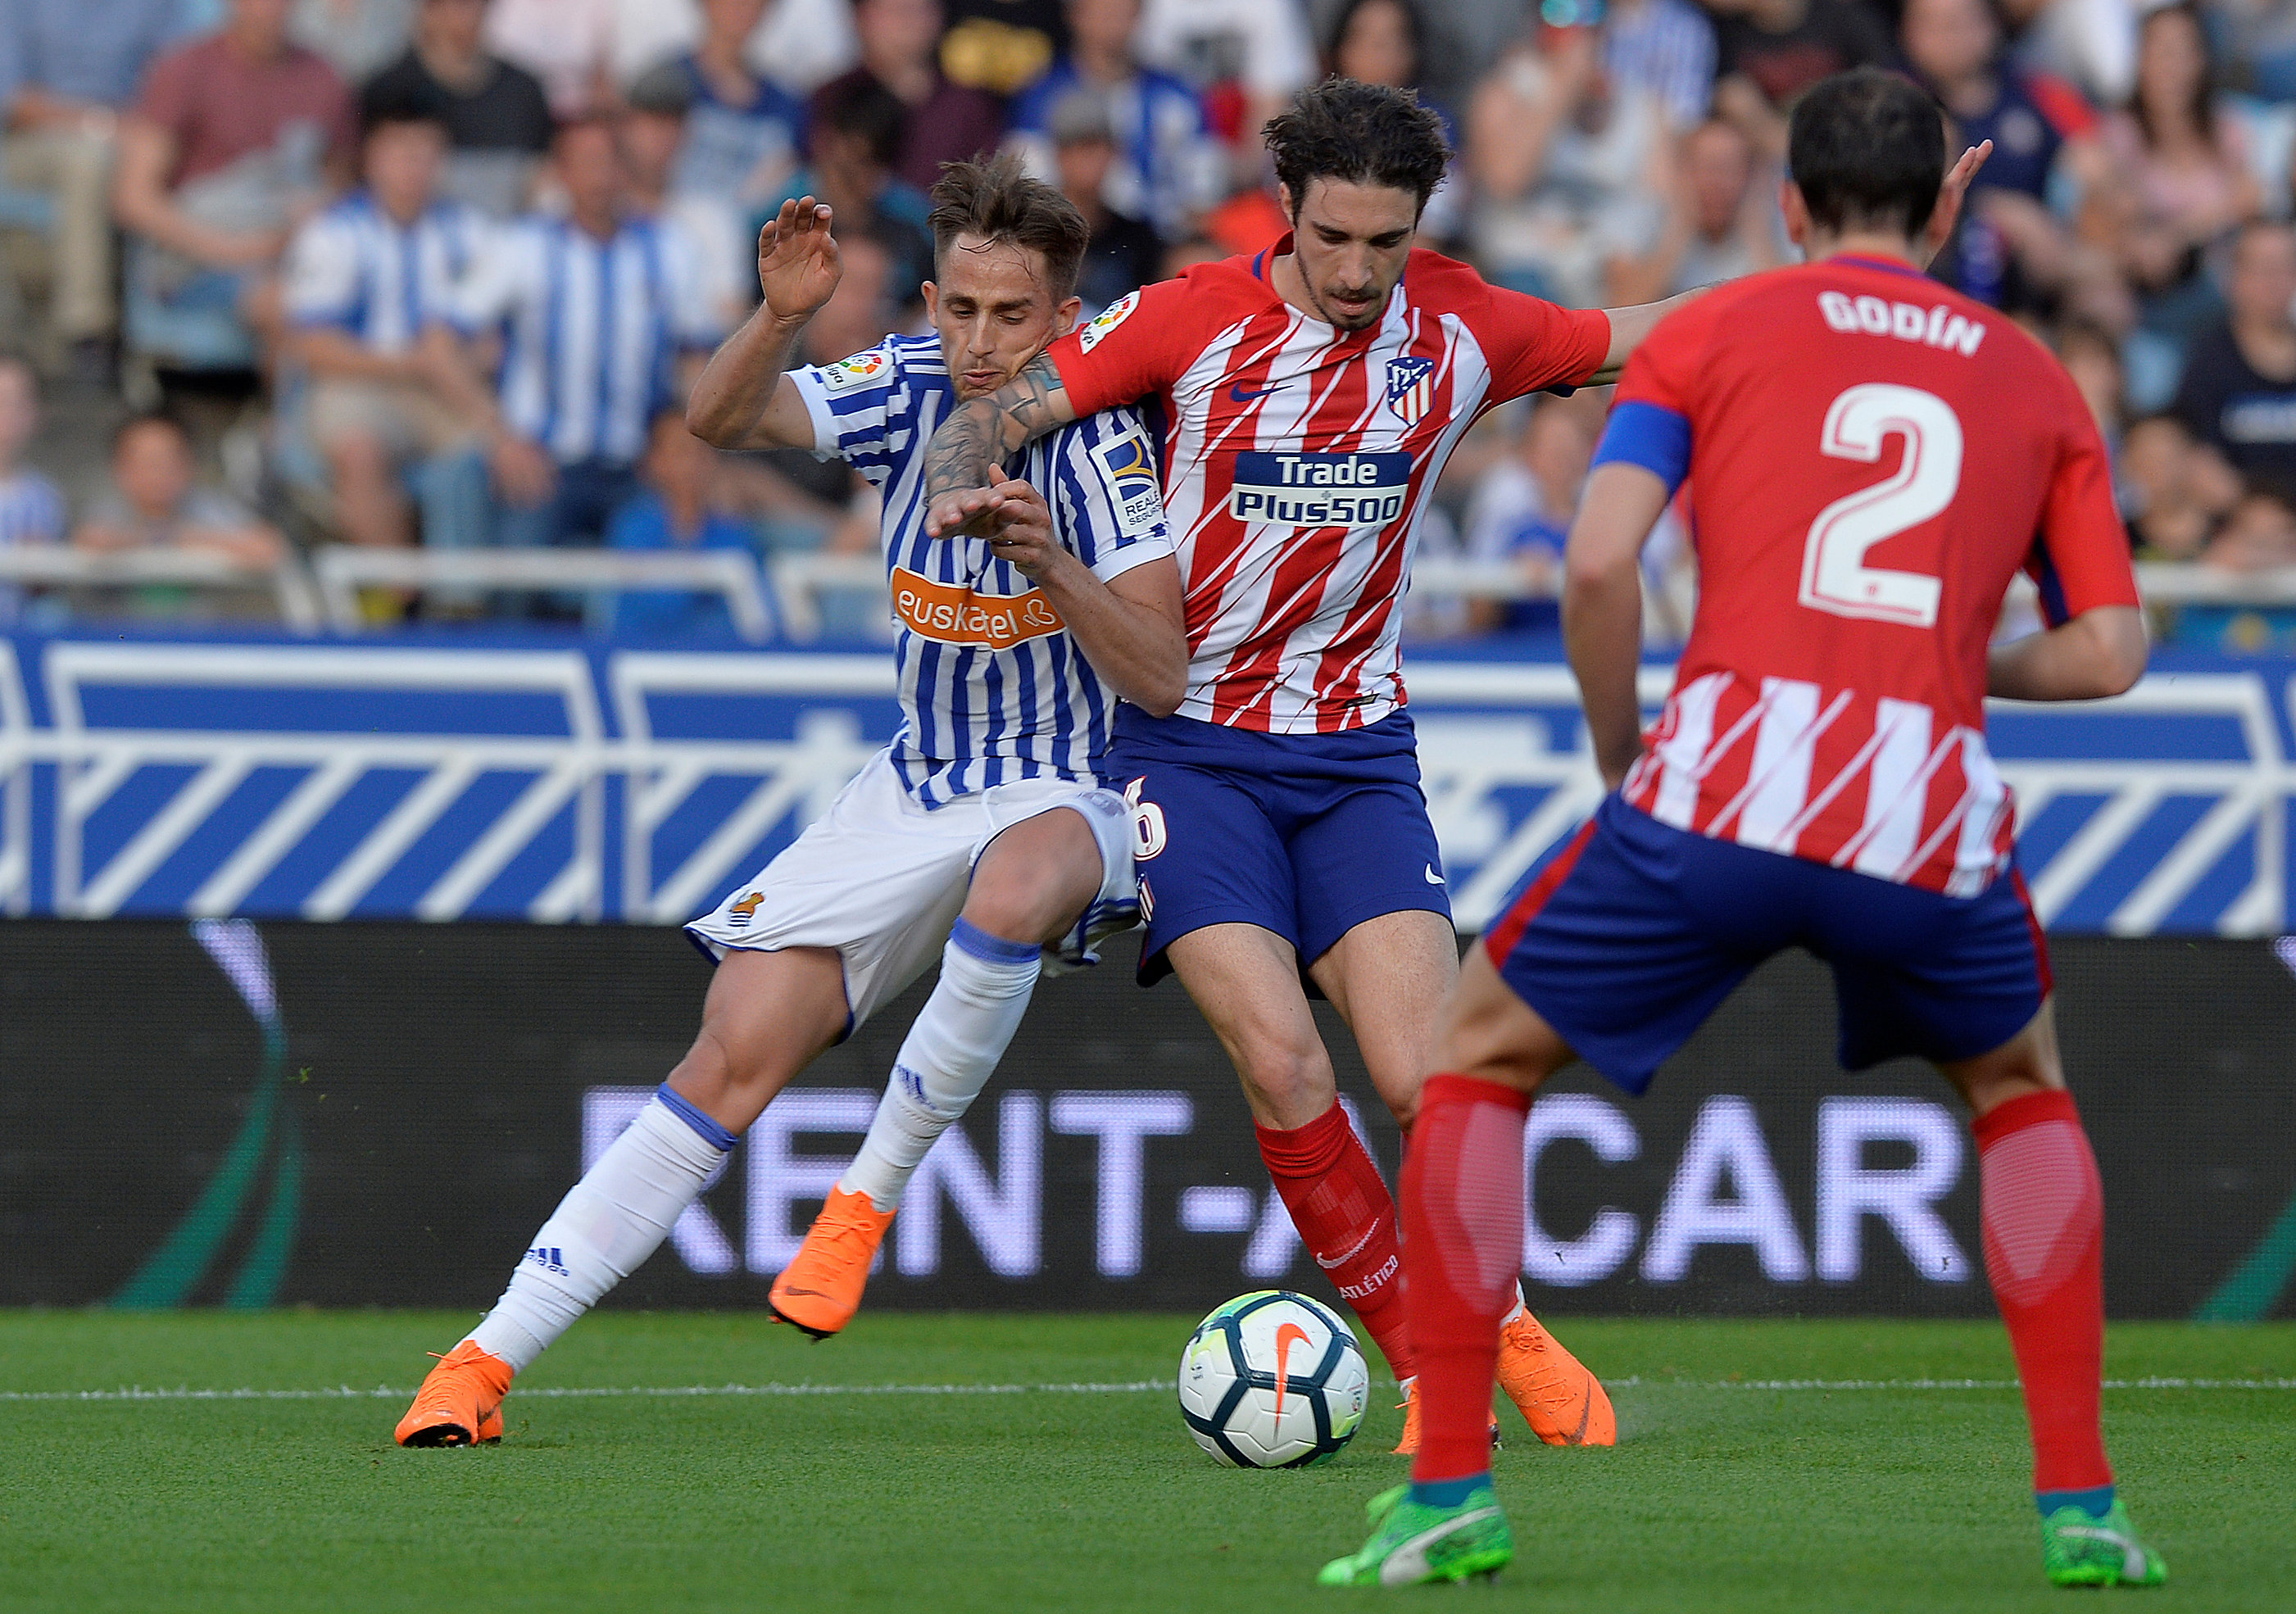 Soccer Football - La Liga Santander - Real Sociedad vs Atletico Madrid - Anoeta Stadium, San Sebastian, Spain - April 19, 2018   Real Sociedad's Adnan Januzaj in action with Atletico Madrid's Sime Vrsaljko     REUTERS/Vincent West